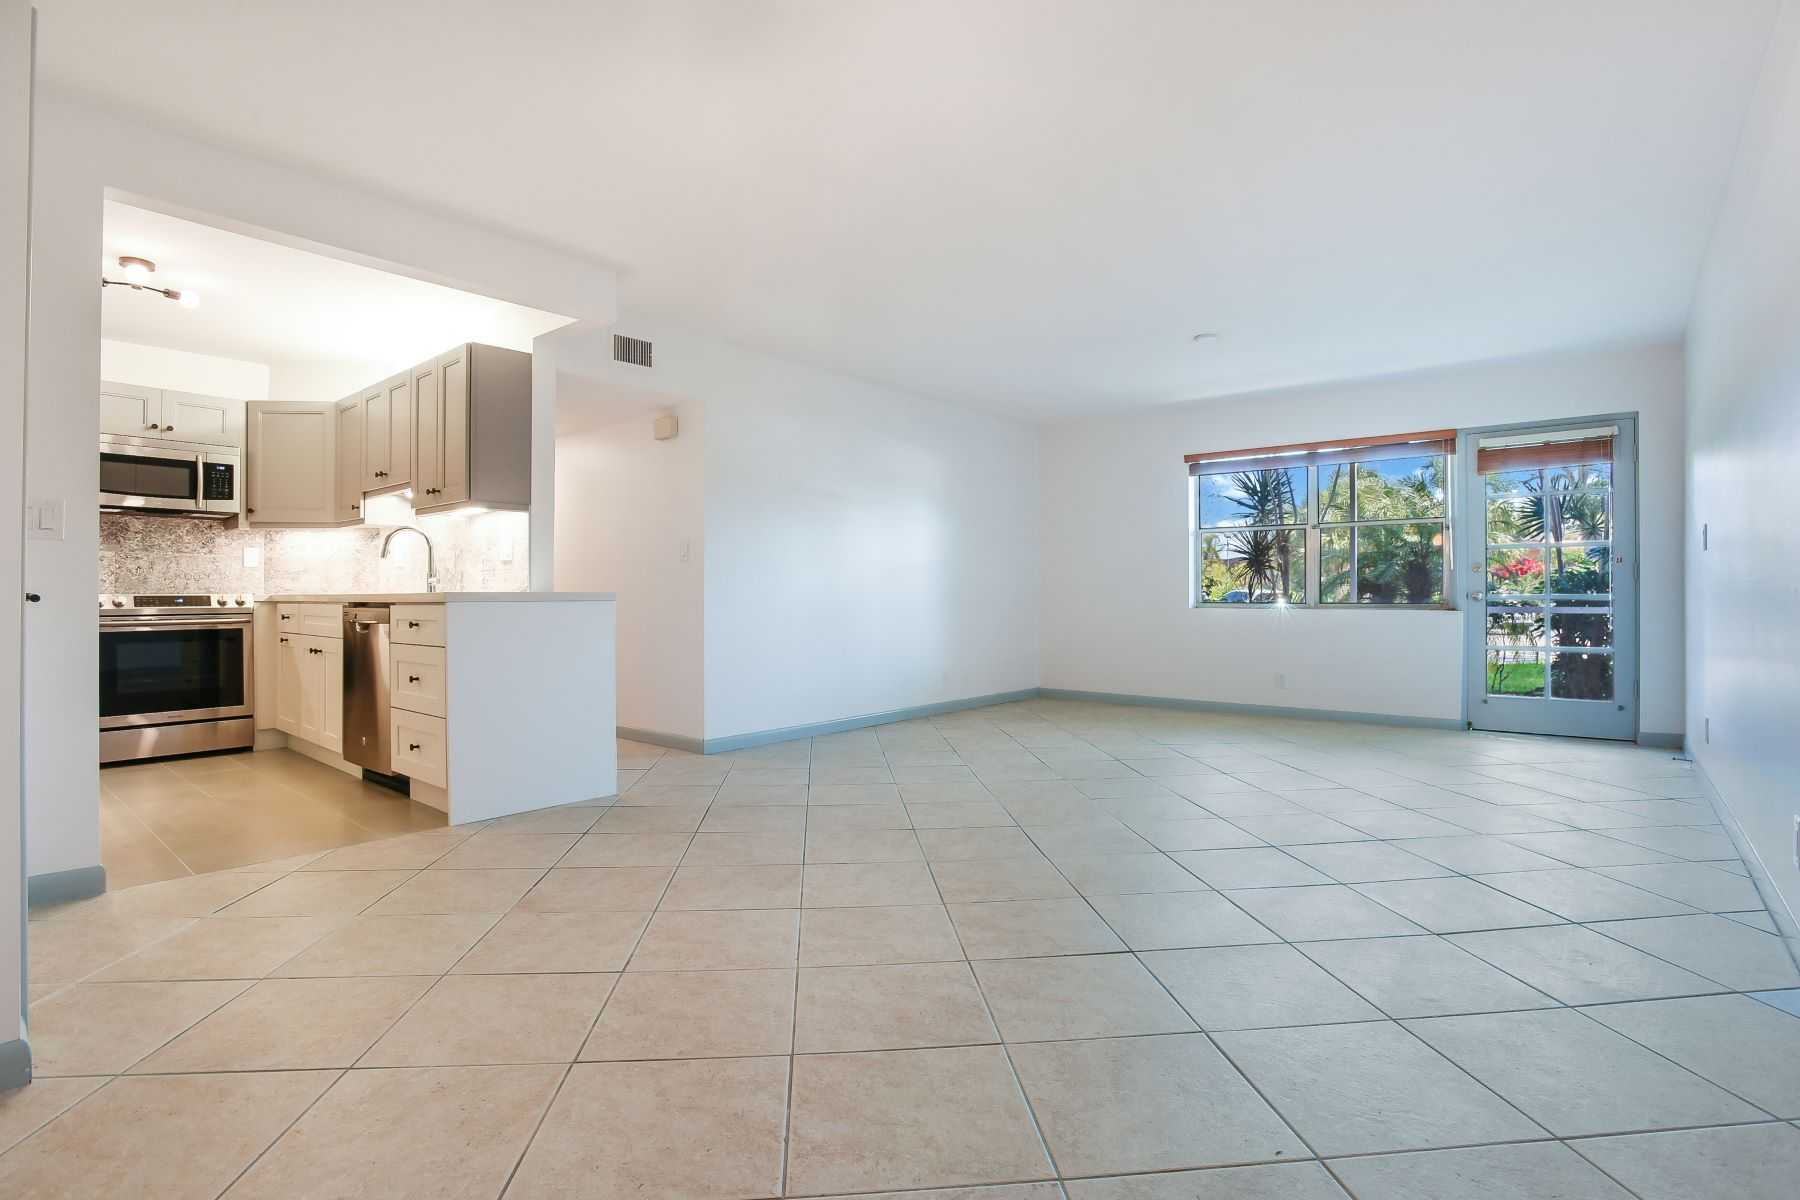 Single Family Home for Sale at 1920 Ne 1st Ter #116H 1920 Ne 1st Ter 116H Wilton Manors, Florida 33305 United States